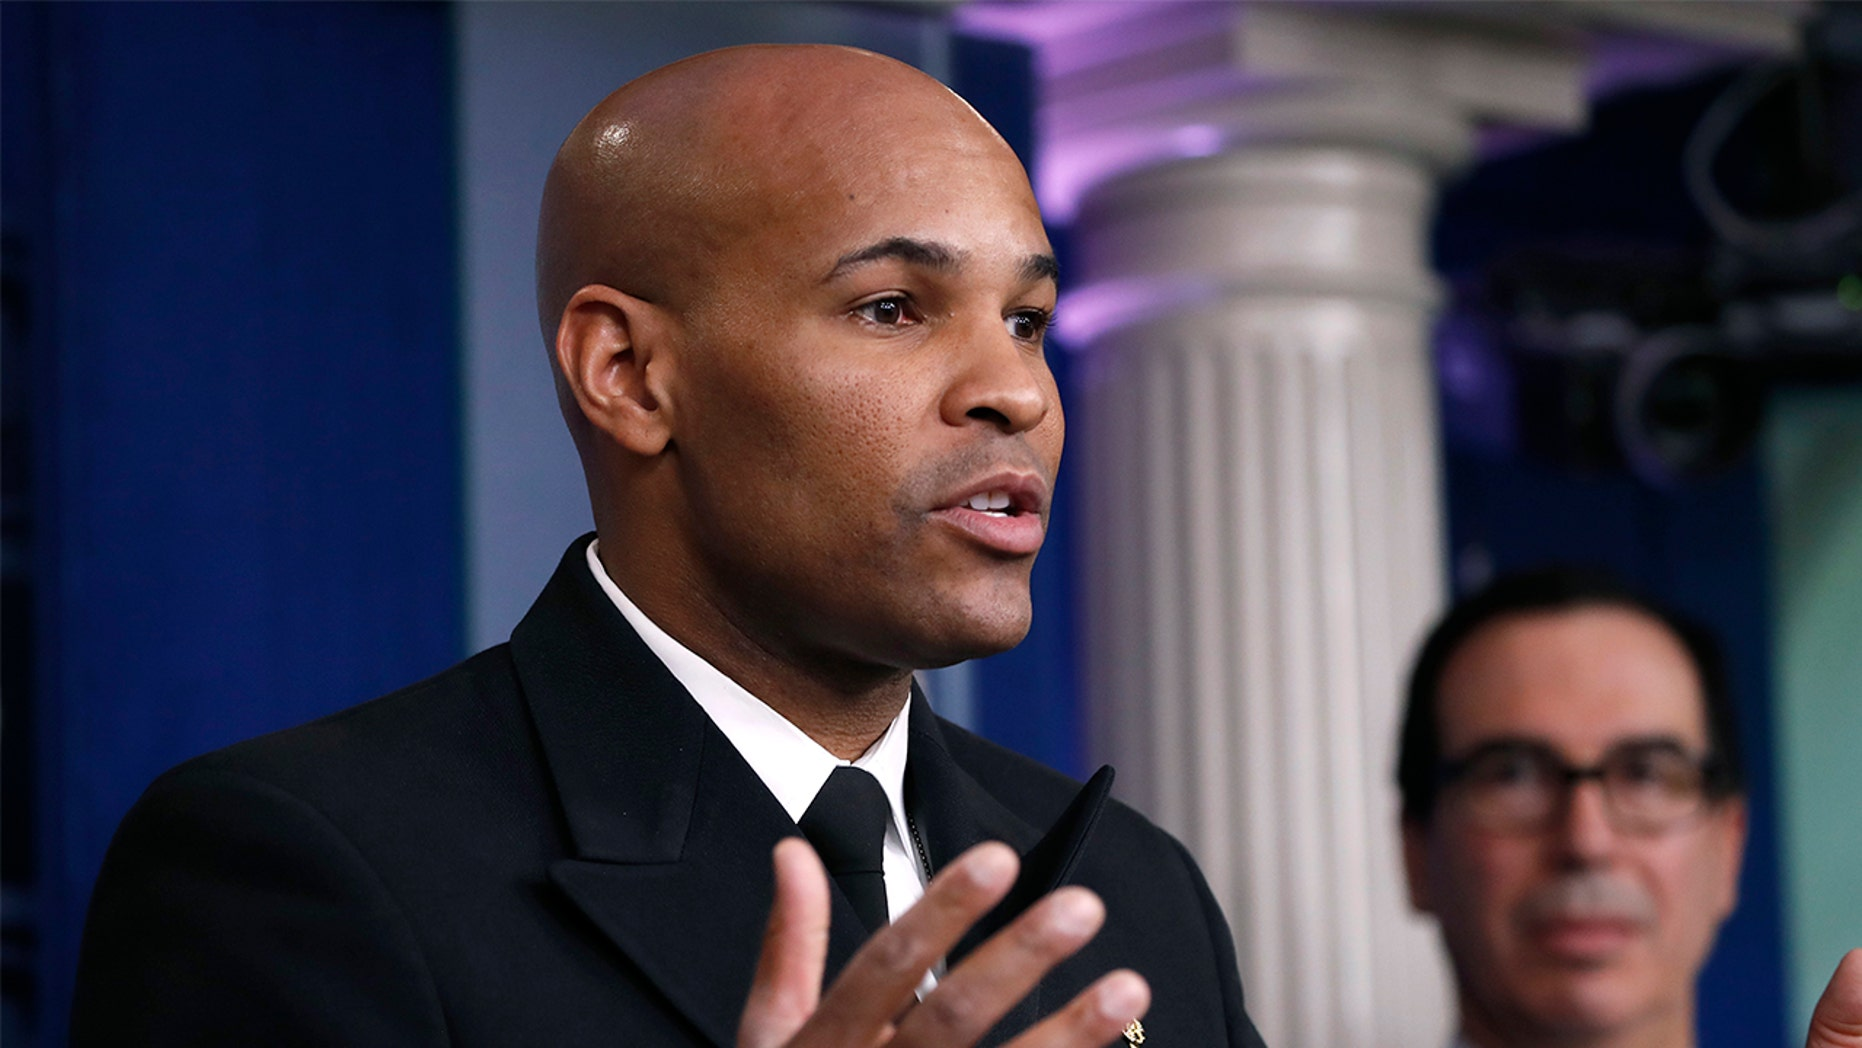 U.S. Surgeon General Jerome Adams speaks during a briefing on coronavirus in the Brady press briefing room at the White House, Saturday, March 14, 2020, in Washington, as Treasury Secretary Steven Mnuchin listens. (AP Photo/Alex Brandon)